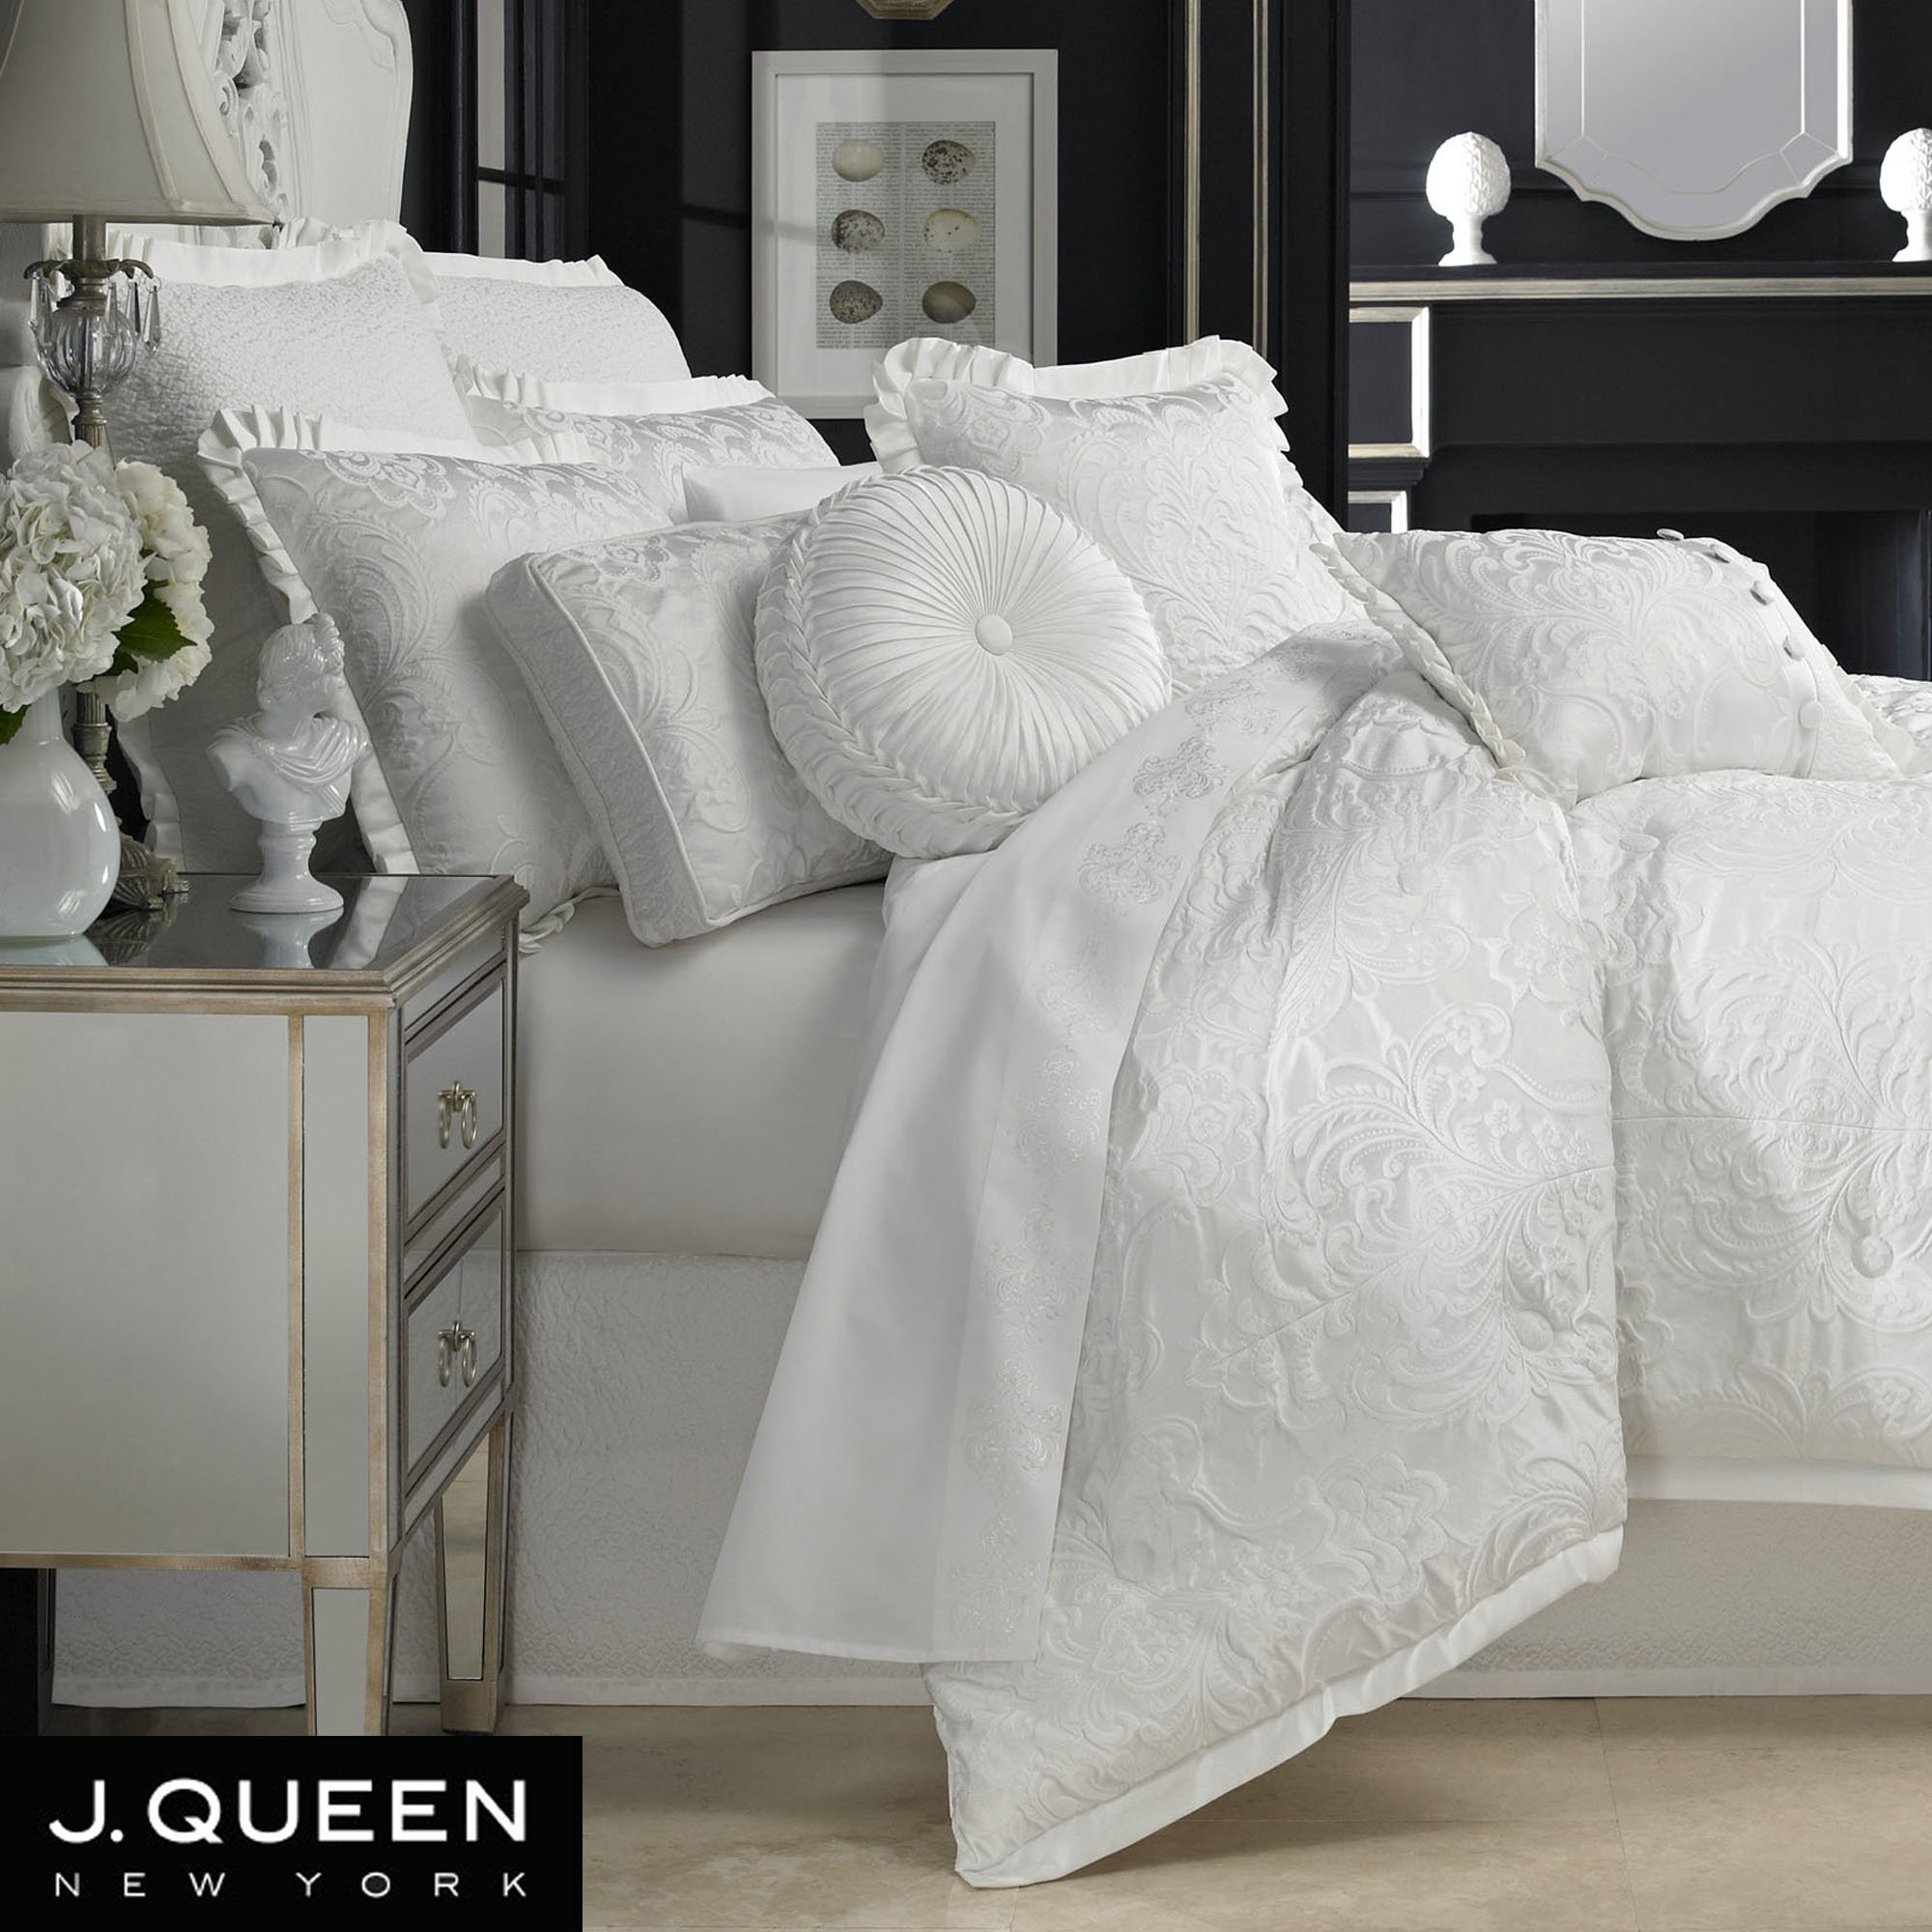 extraordinary stunning modern comforter set way for comforters accent pleat size king ideas bedroom white with decoration queen colorful bedding sets bed quilt paisley